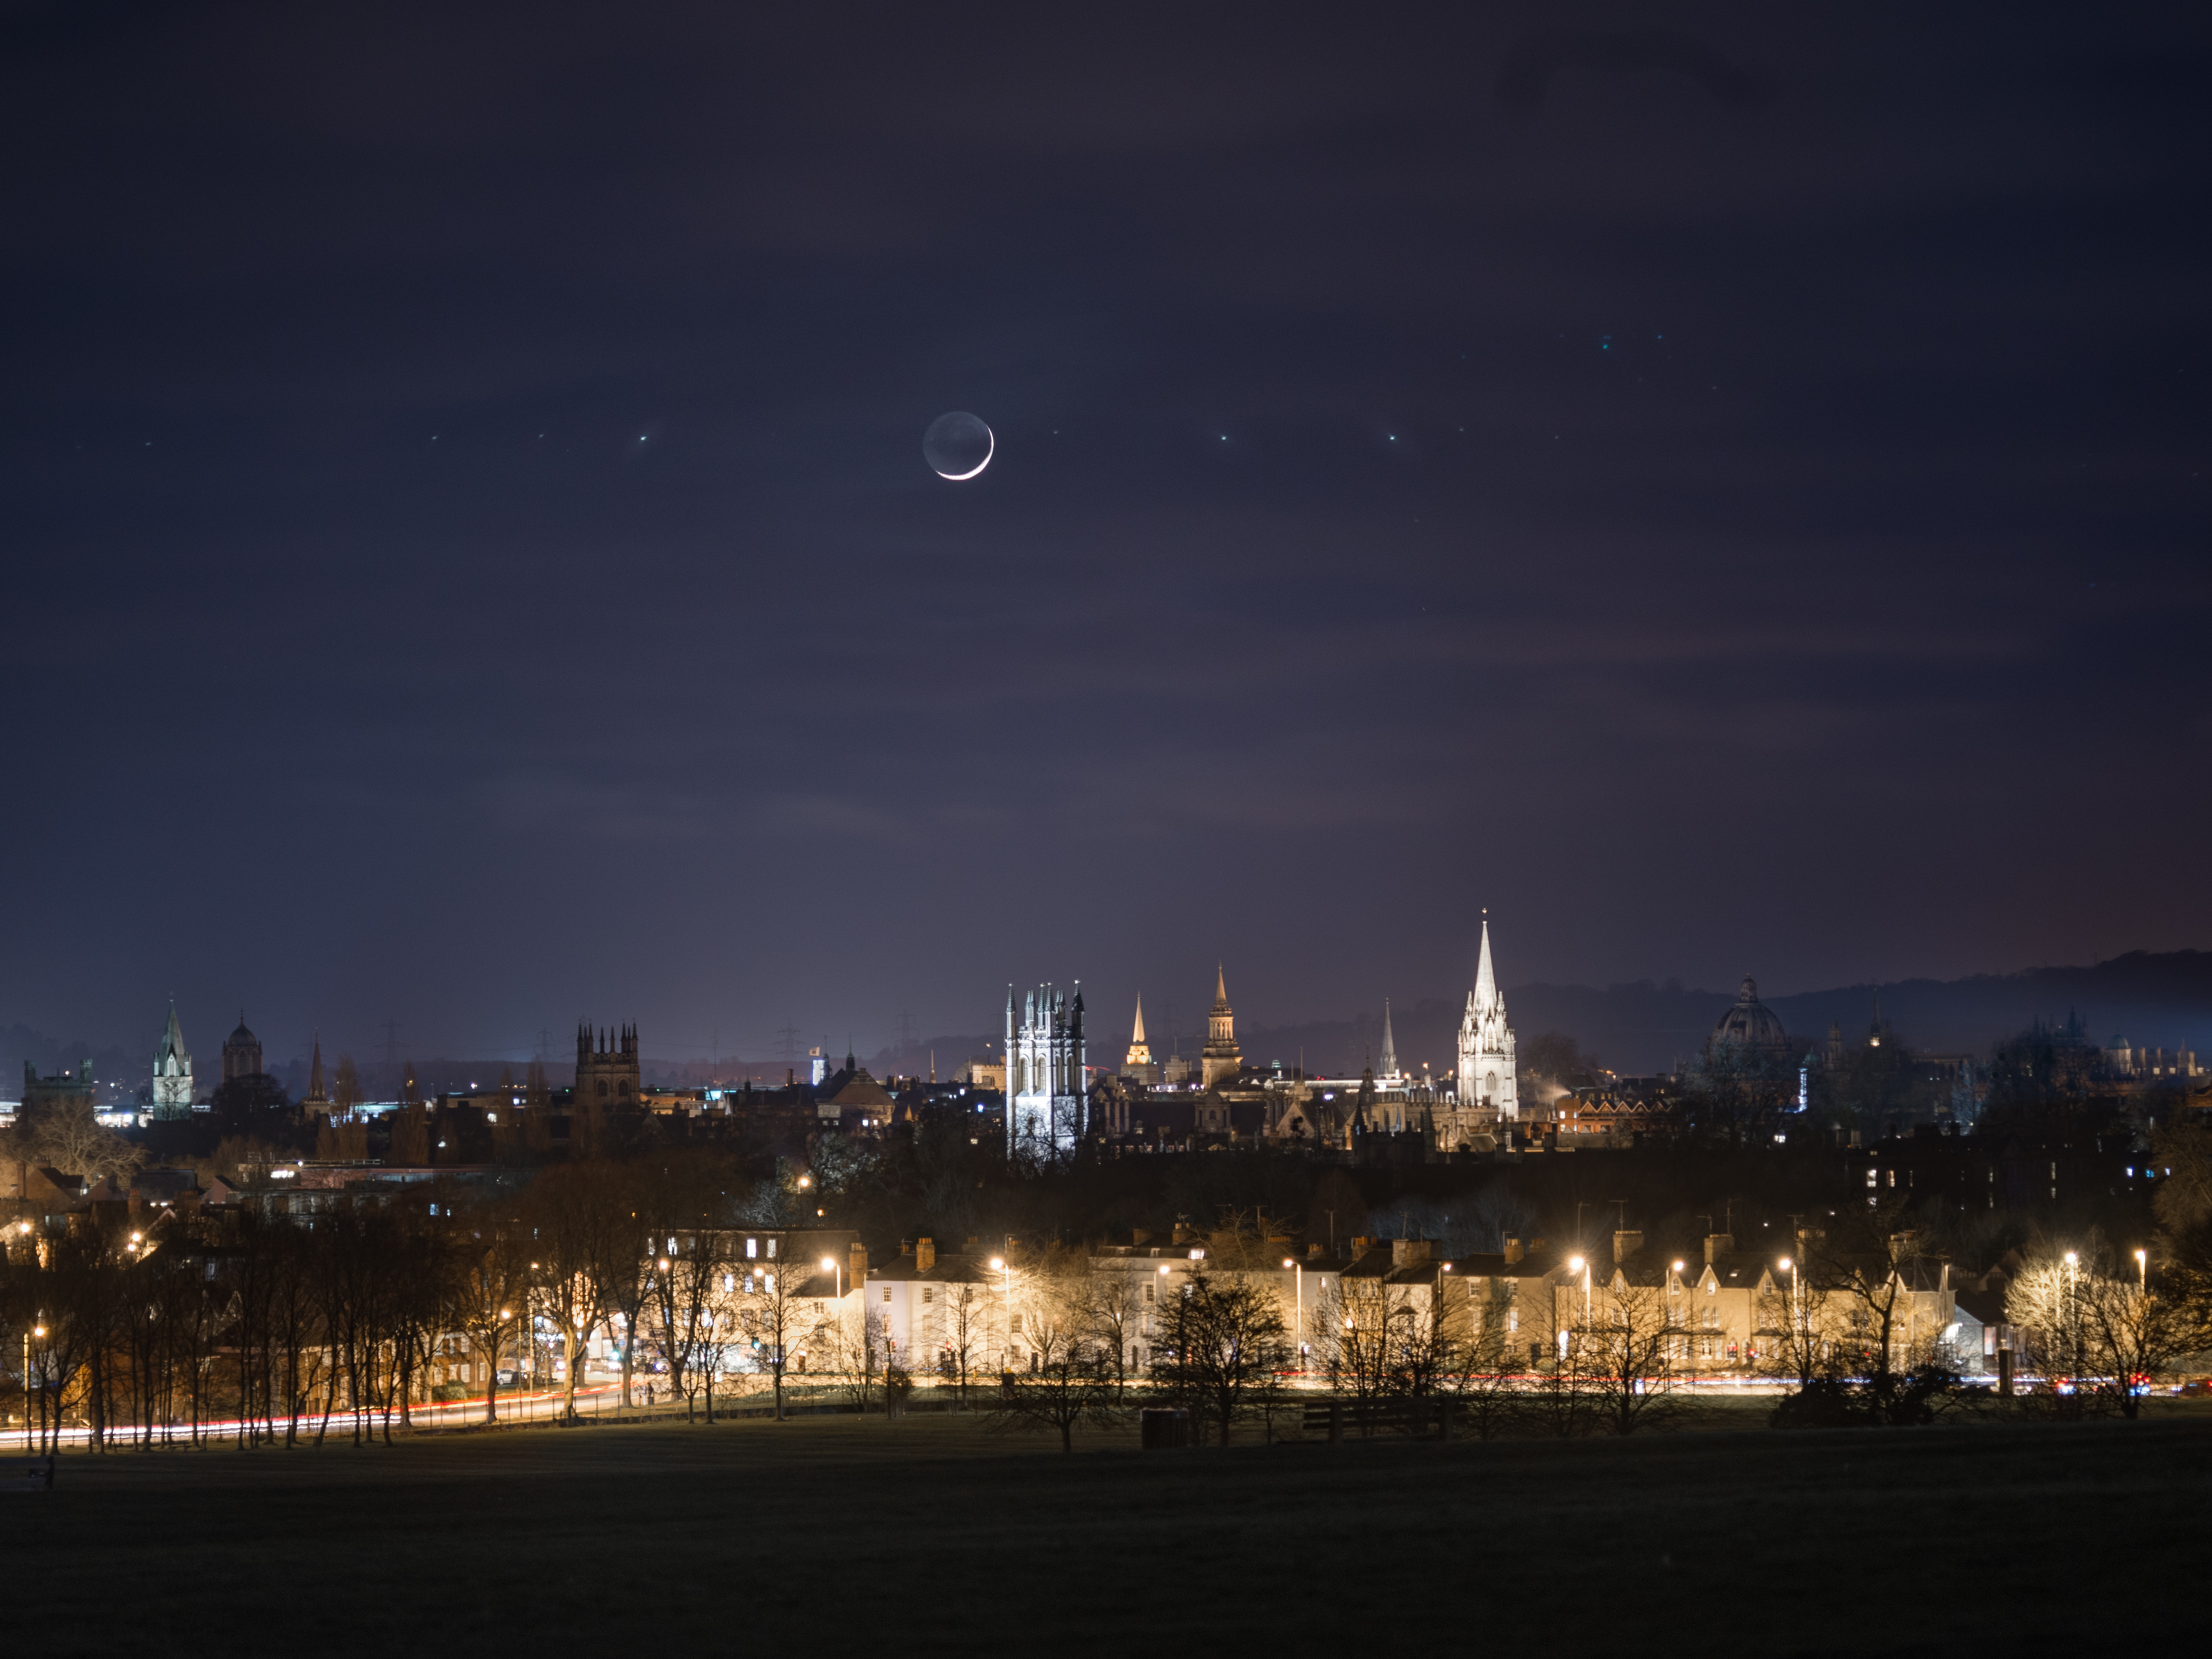 View of Oxford at night showing a new moon above the Dreaming Spires